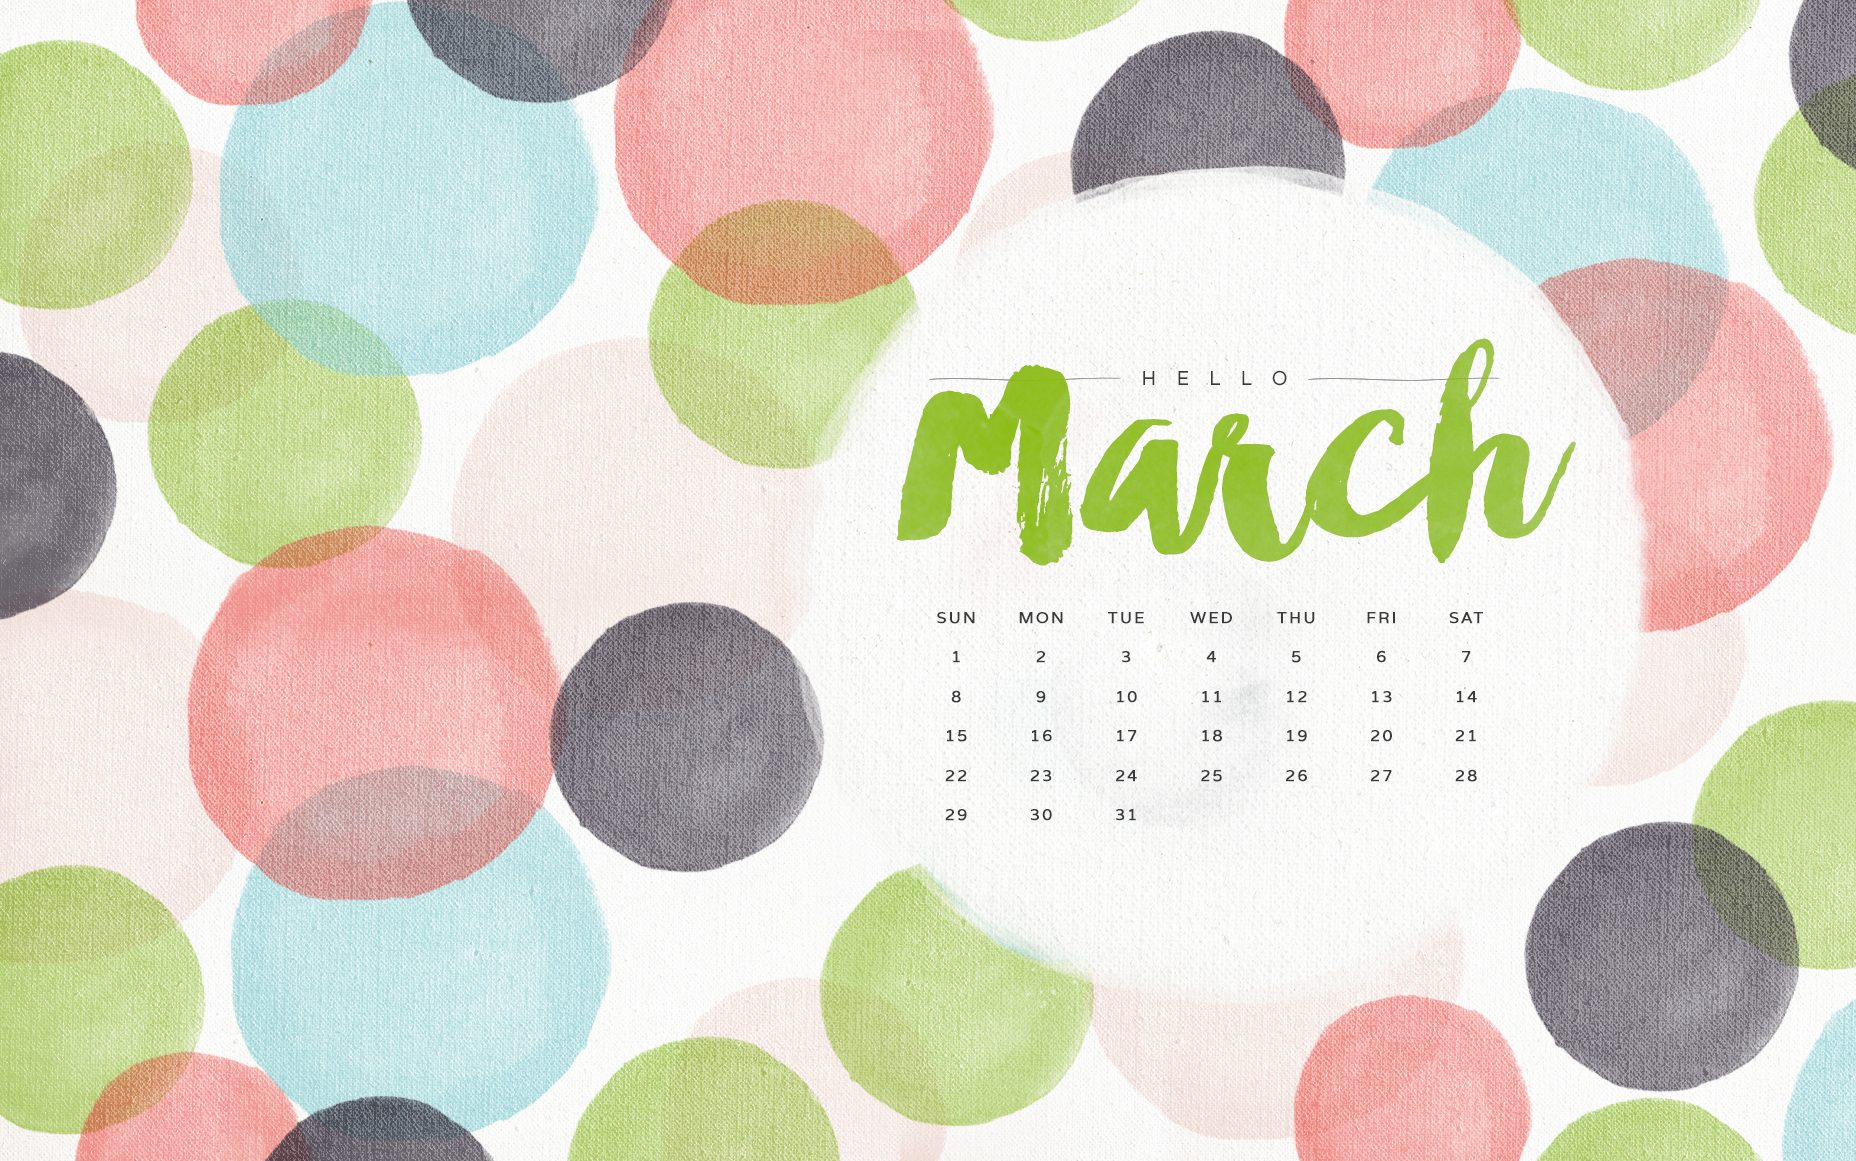 Wonderful March 2015 Calendar Picture   HD Wallpapers 1856x1161